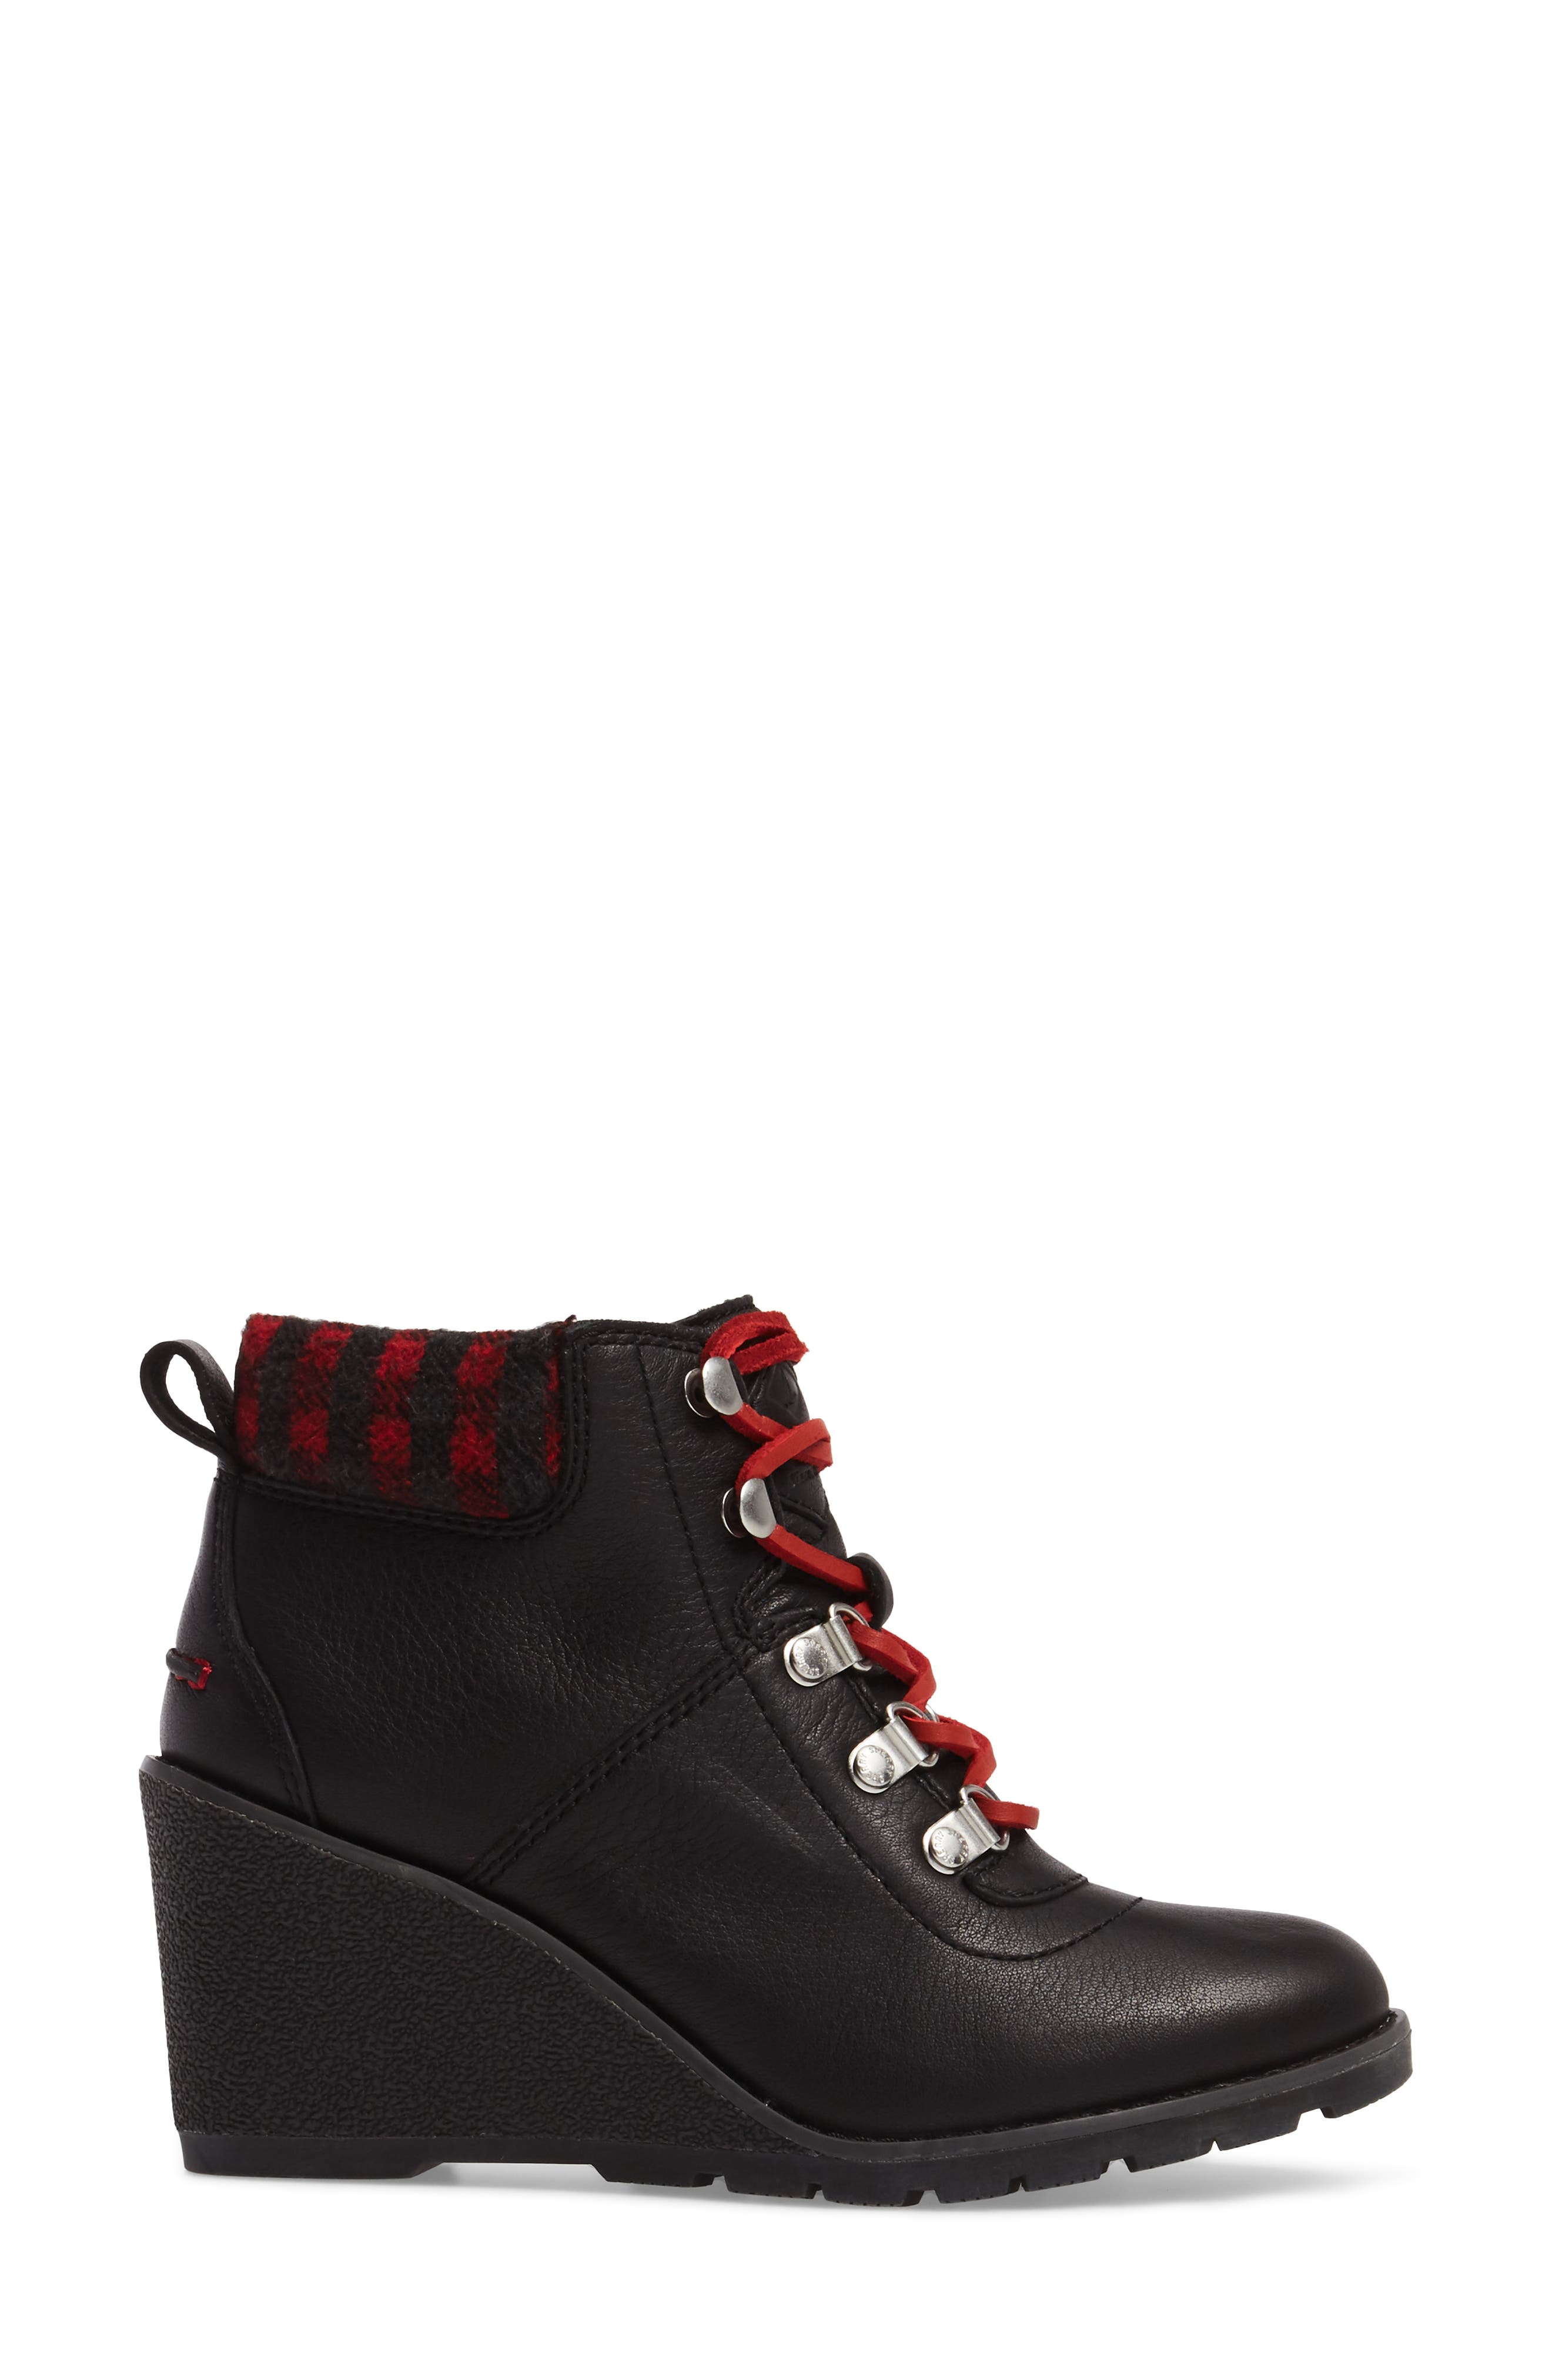 Top-Sider<sup>®</sup> Celeste Bliss Wedge Boot,                             Alternate thumbnail 3, color,                             001